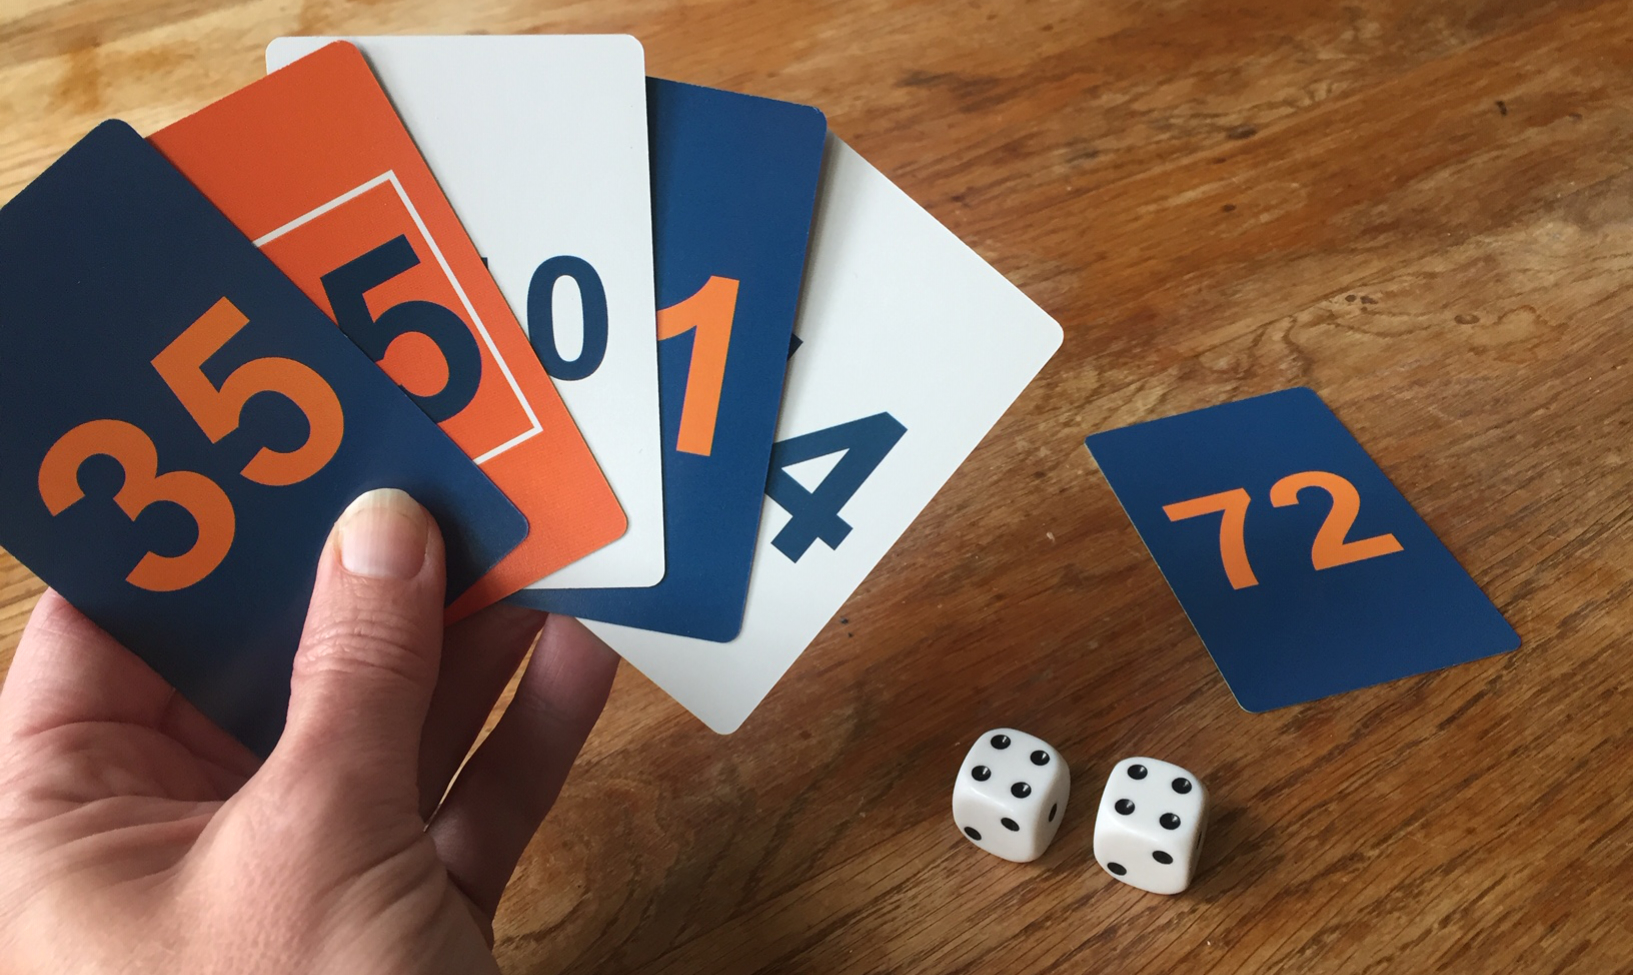 Tables-Tastic cards and dice